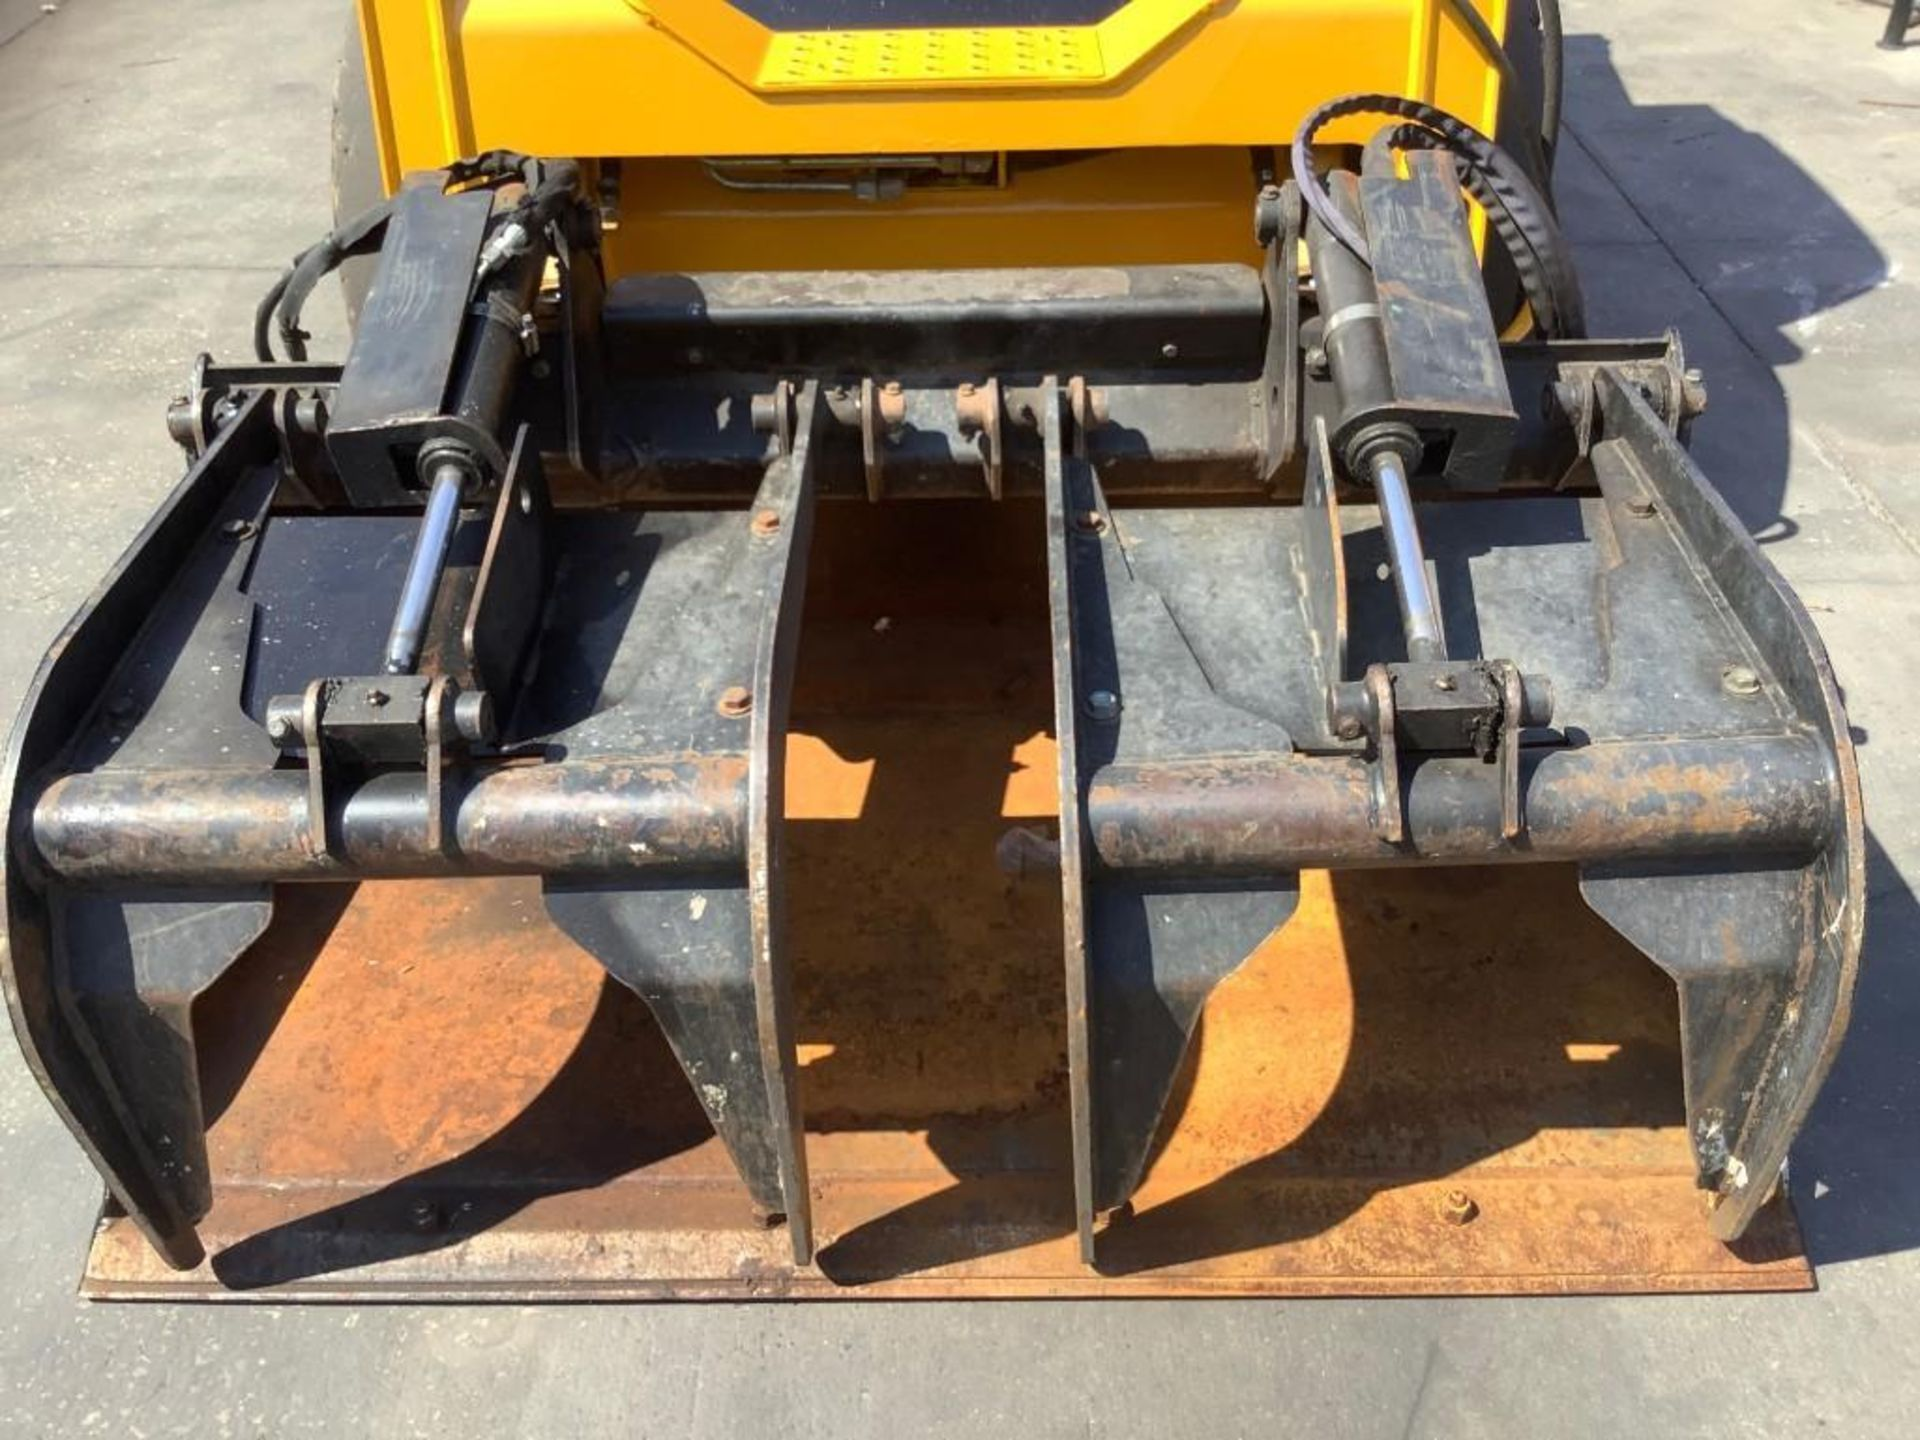 JOHN DEERE SKIDSTEER MODEL 315, DIESEL, GRAPPLE ATTACHMENT, SOLID TIRES, AUX HYDRAULIC, ENCLOSED CAB - Image 9 of 15